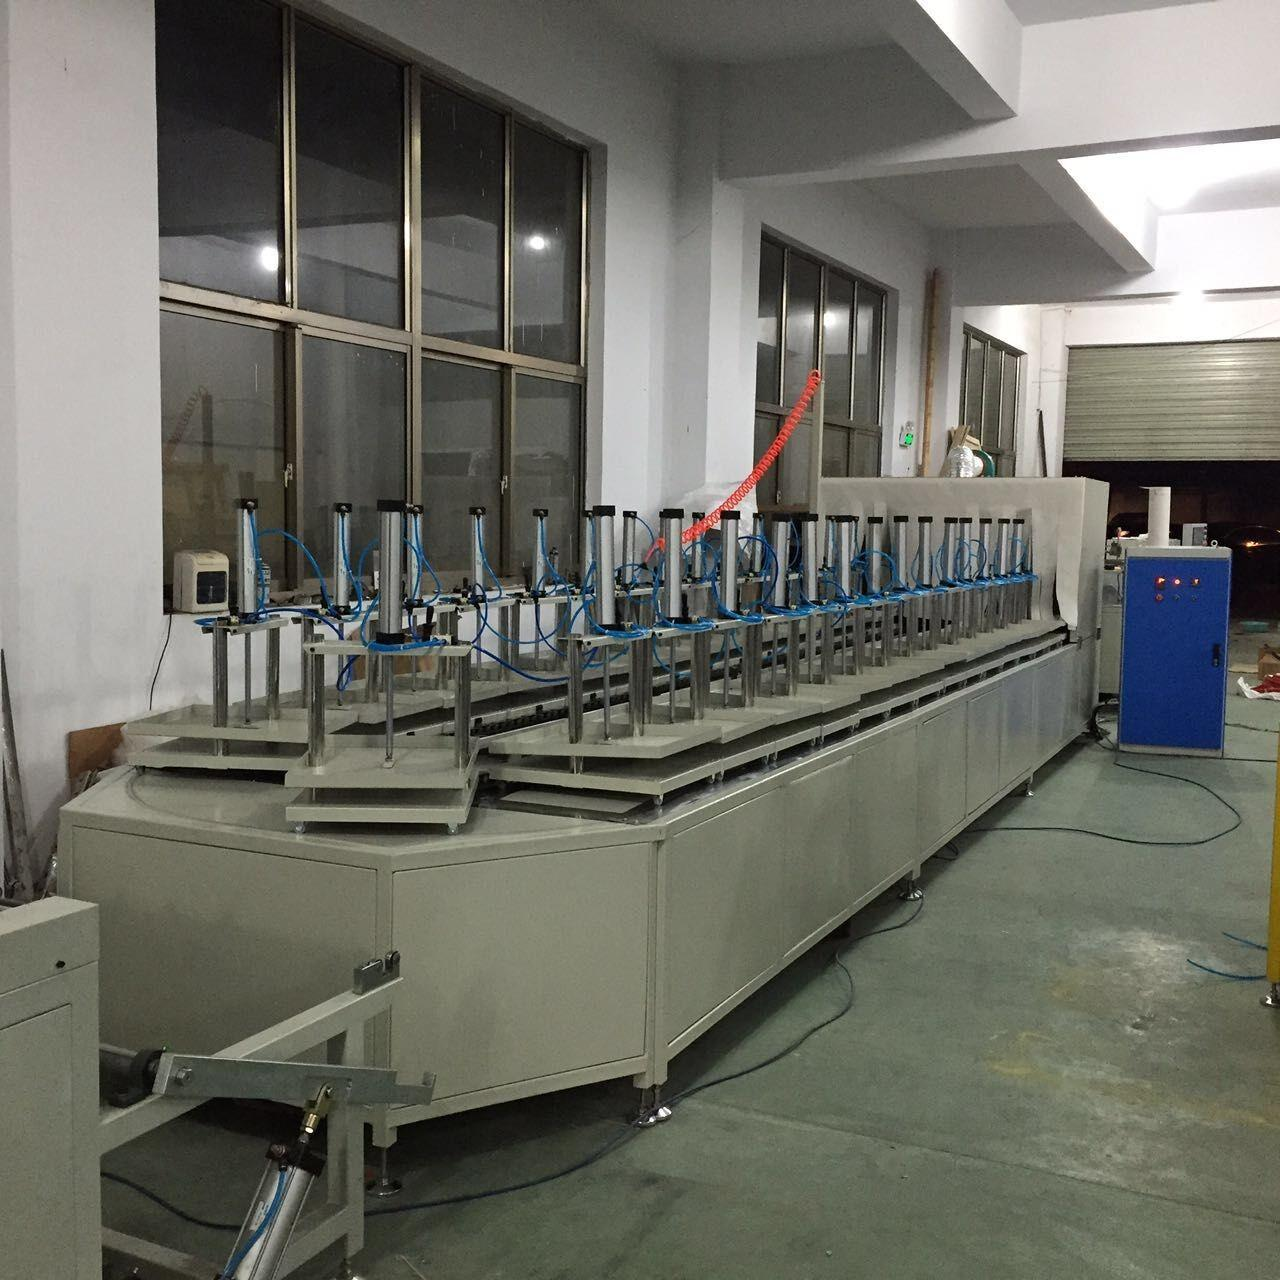 Auto 36 Stations Air Filter Making Machine for HDAF Turntable Curing Worktable